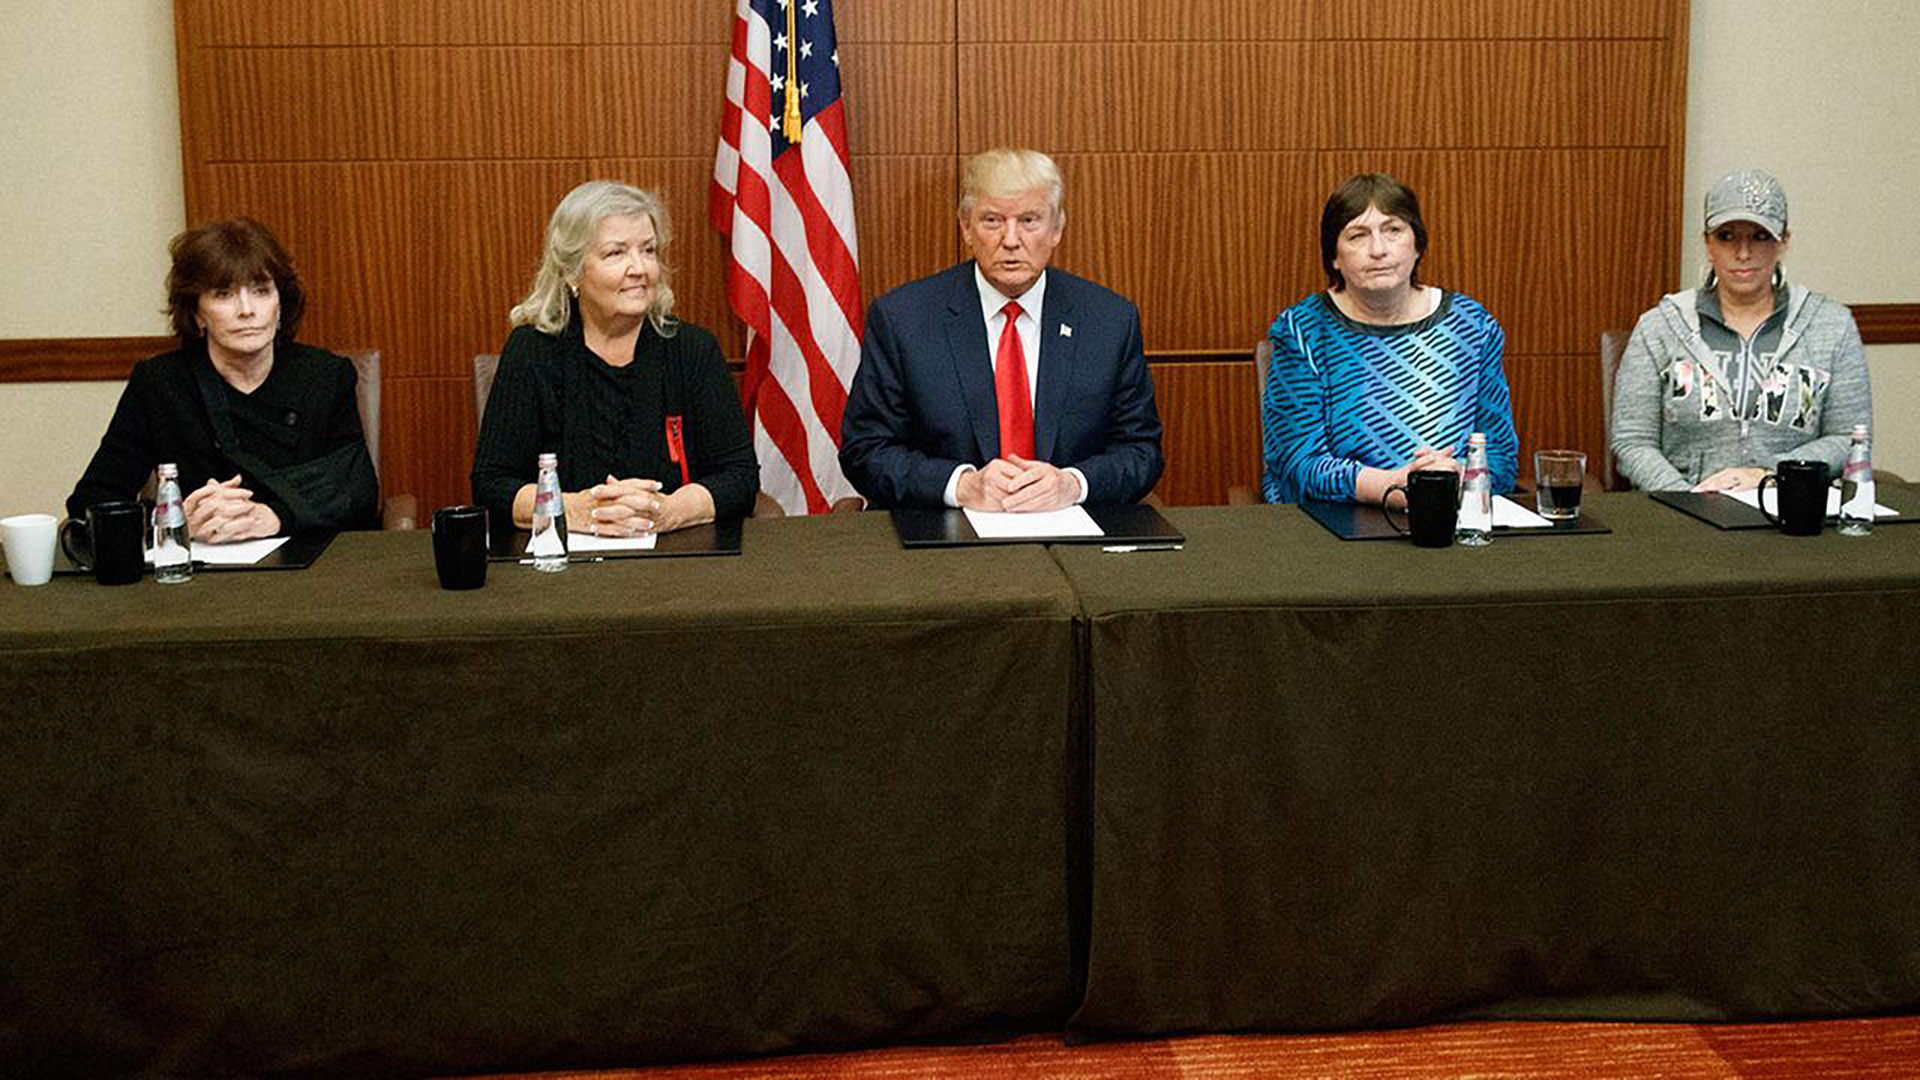 The Women of TRUMP's Tabloid Assault from left to right: Kathleen Willey, Juanita Broaddrick, Kathy Shelton, and Paula Jones